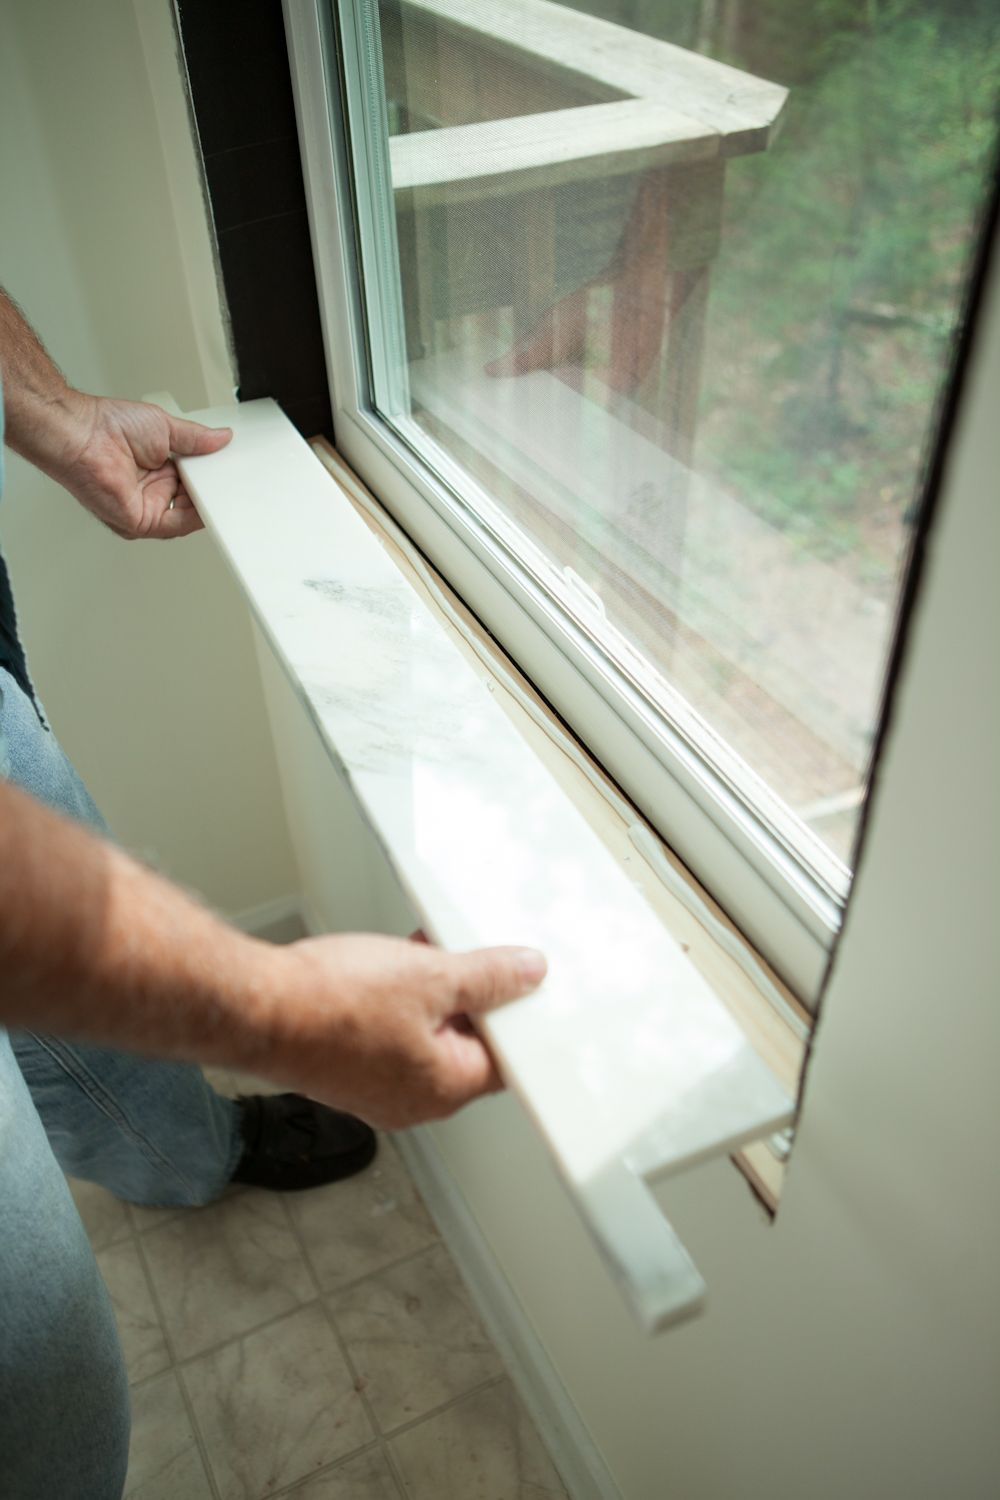 Exceptionnel Window Sill 6 Install 7844 Bathroom Window Sill Ideas, Marble Window Sill, Window  Sill